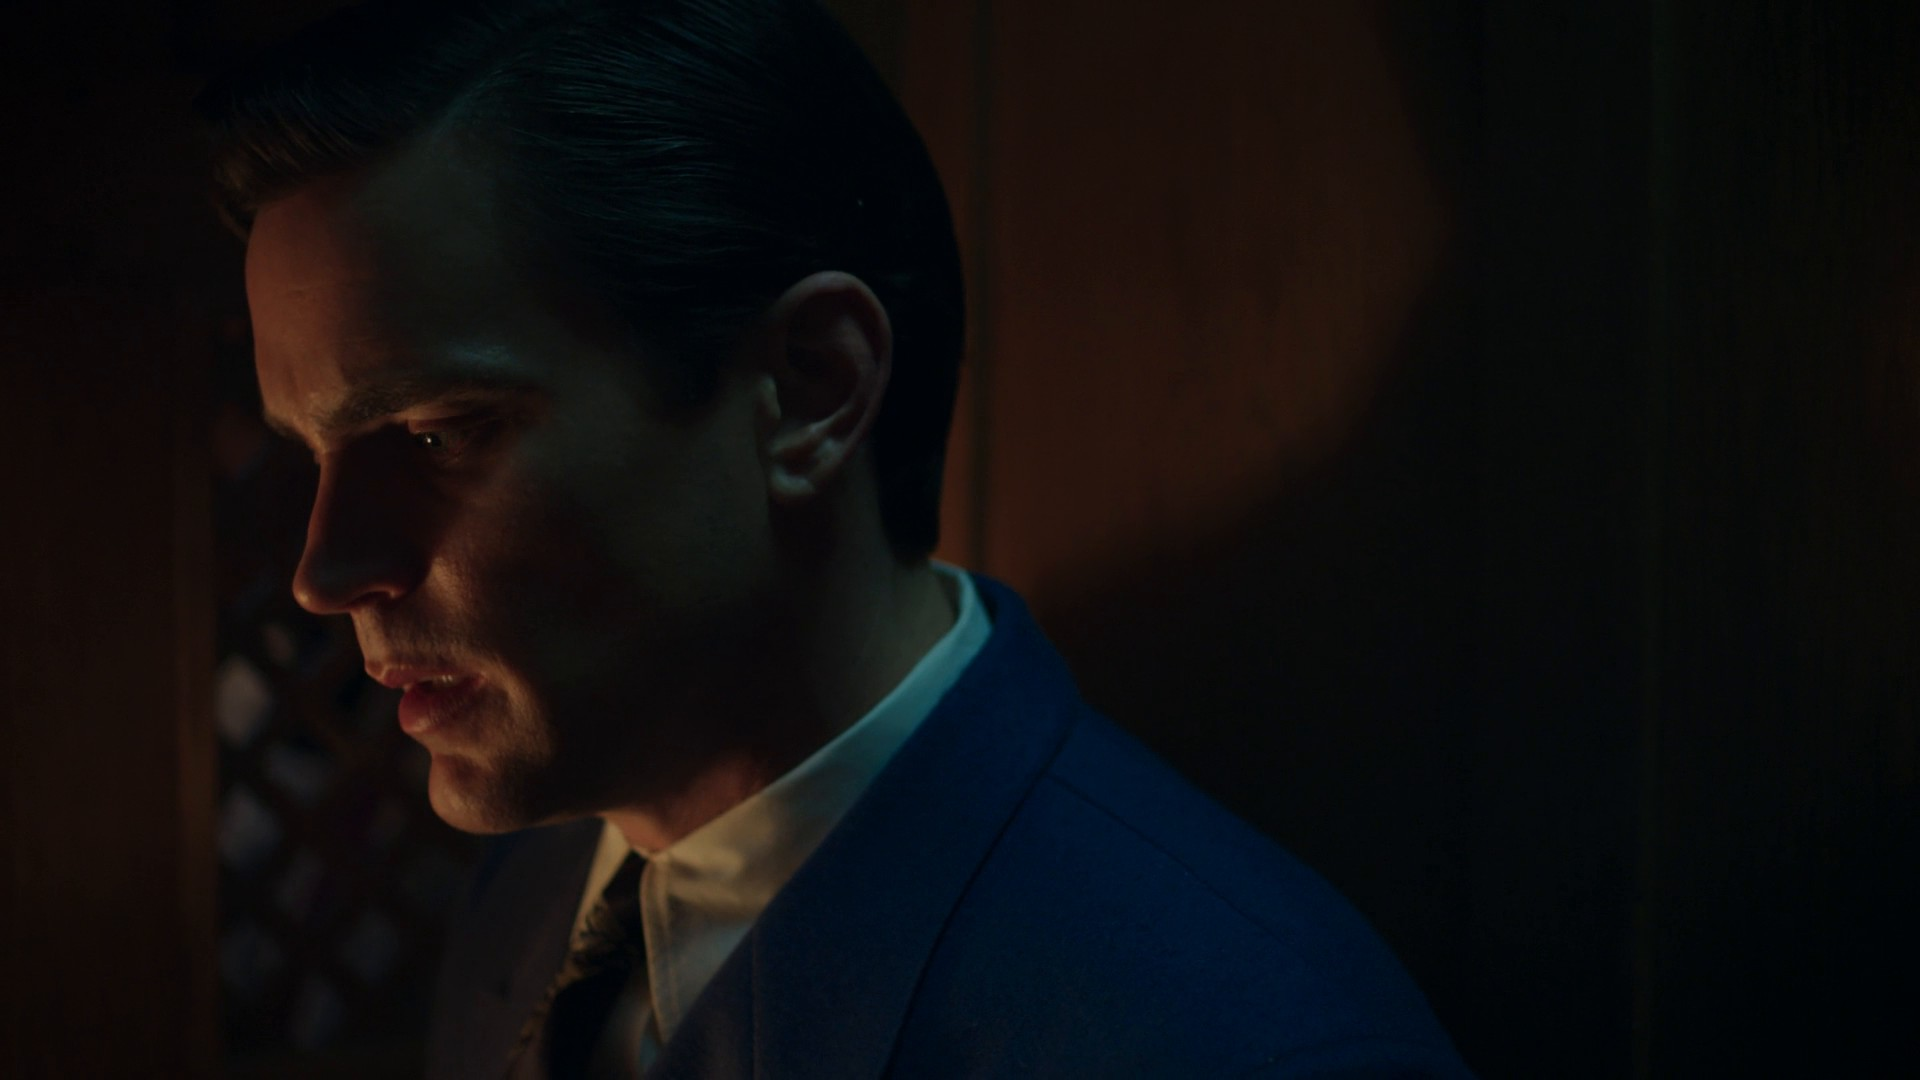 The Last Tycoon S01 1080p WEB h264-JAWN